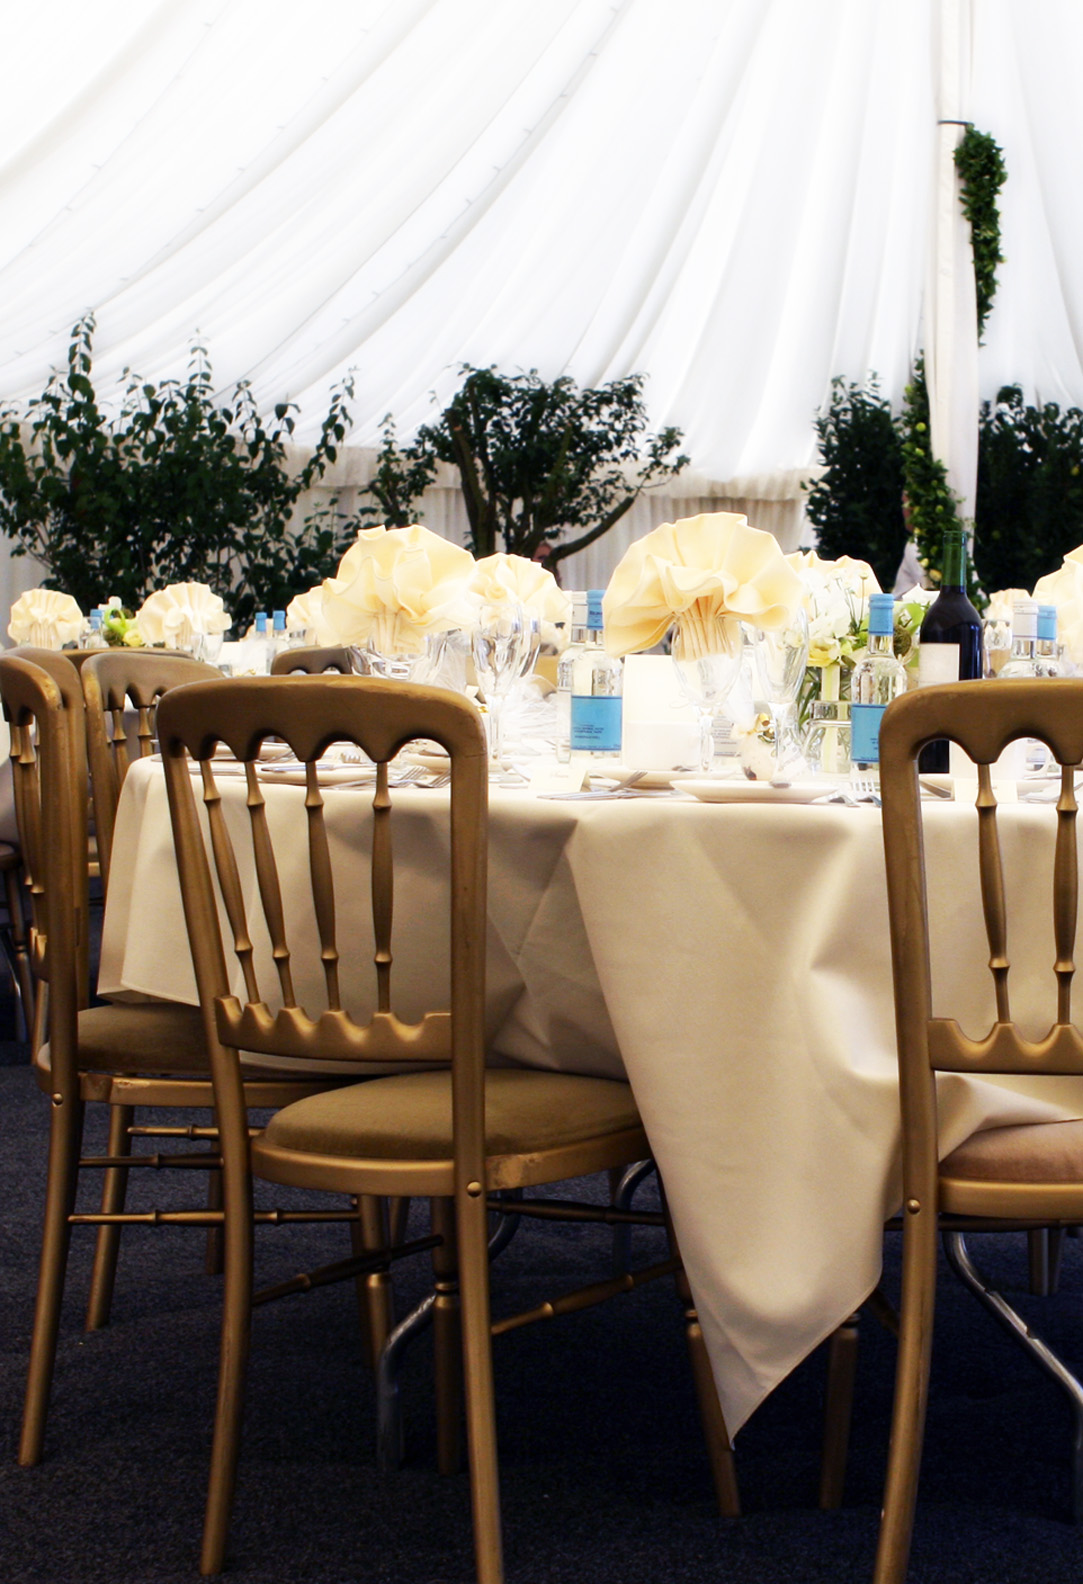 Jewish Weddings O Small Community Destination Simchas Reunions Fundraisers If You Can Think Of A Reason To Bring People